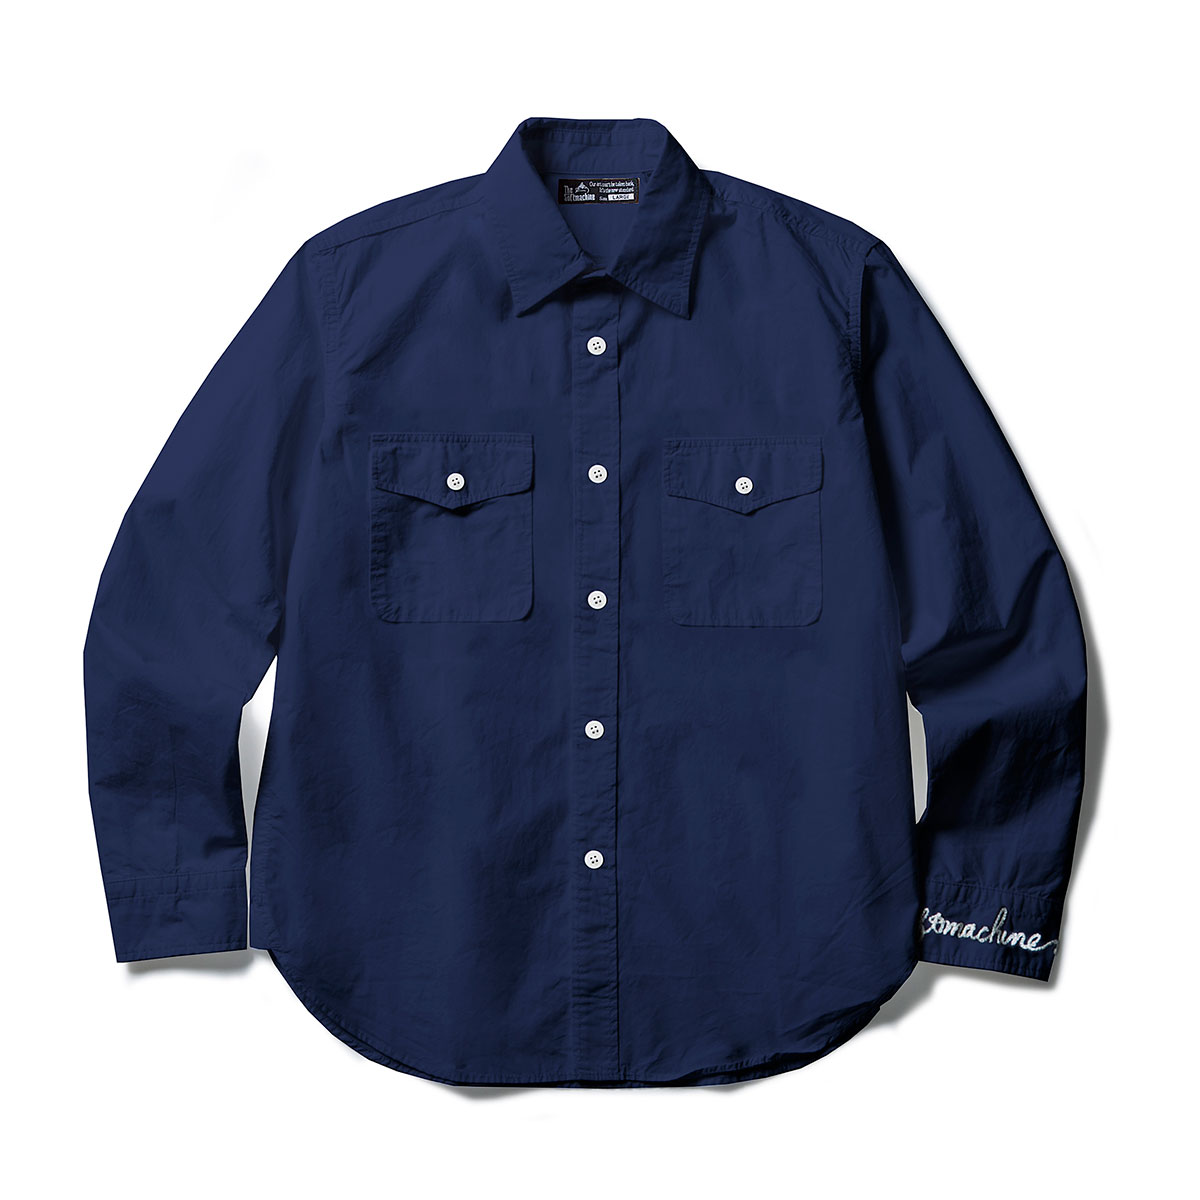 BLUE COLLER SHIRTS